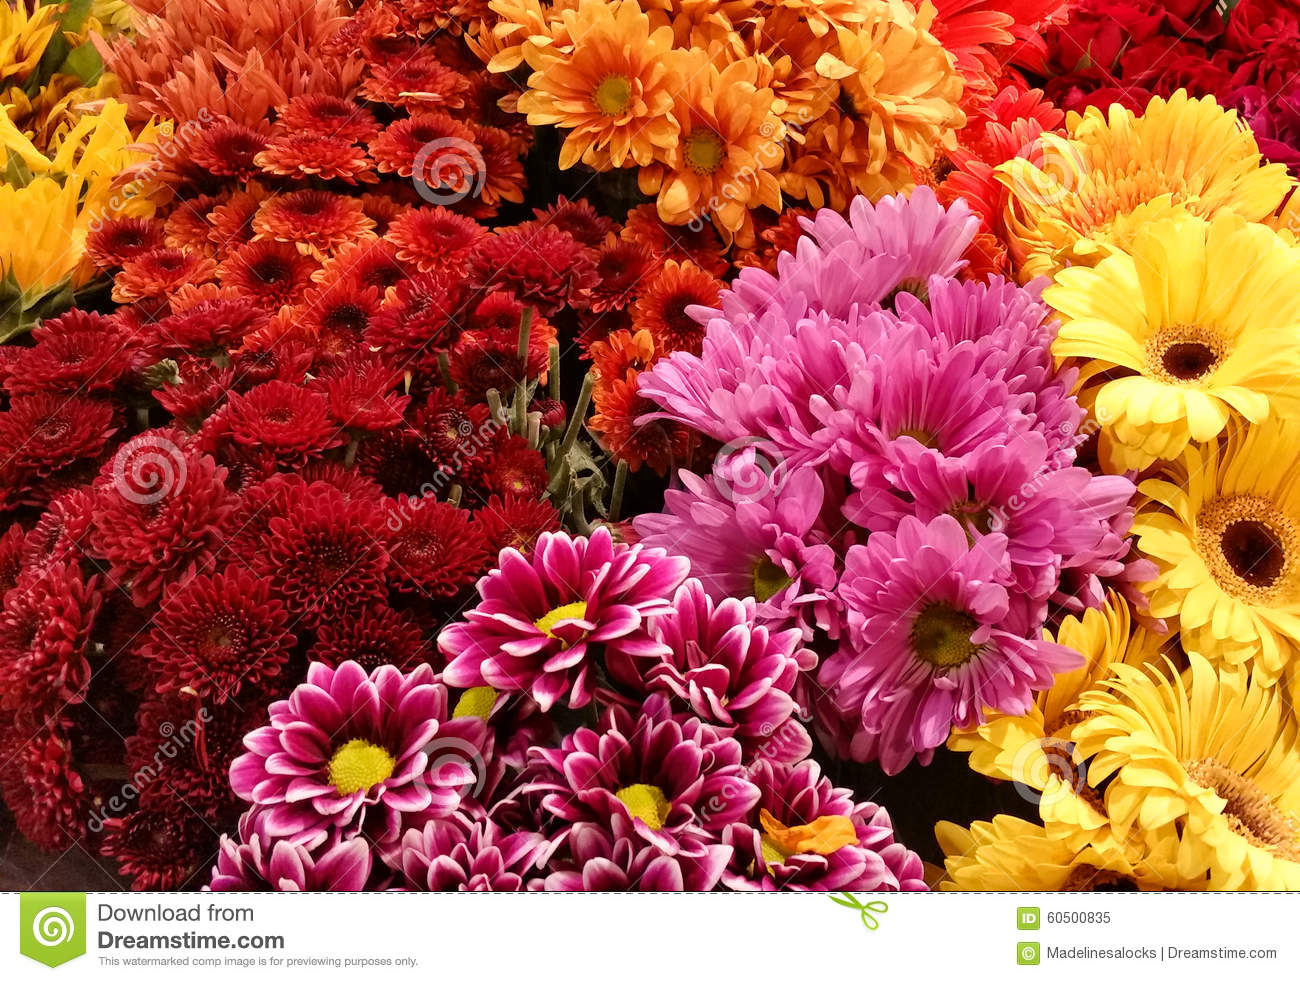 Bright Colored Flowers Stock Photos - 22,290 Images